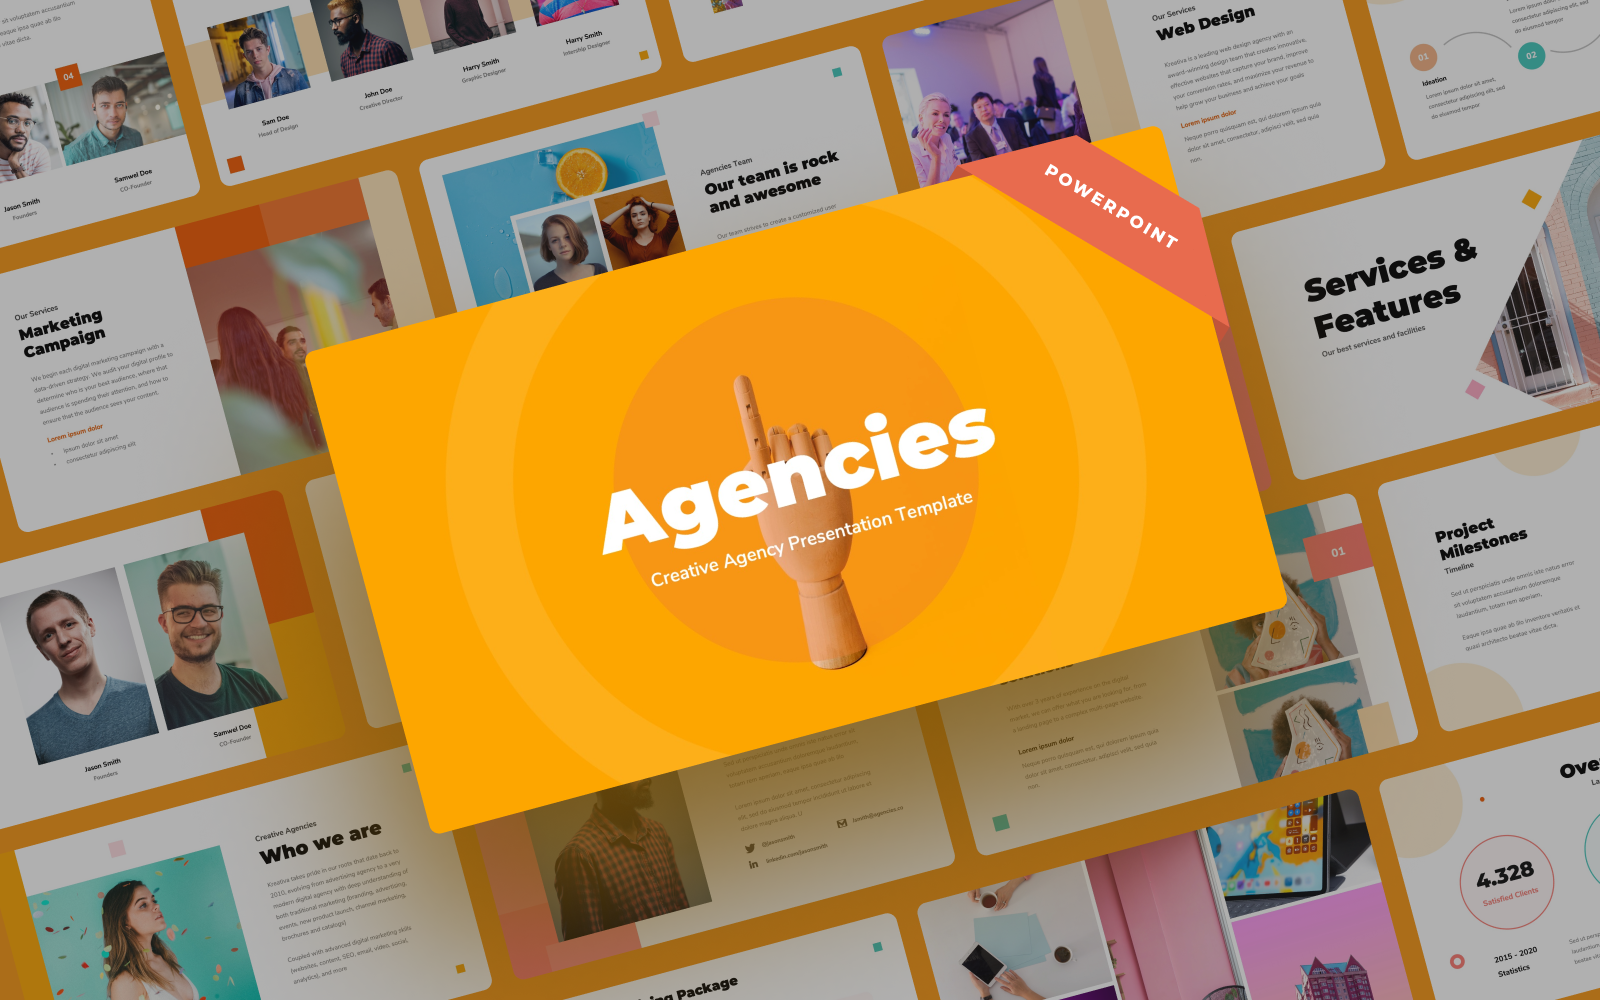 Agencies - Creative Agency Presentation PowerPoint Template